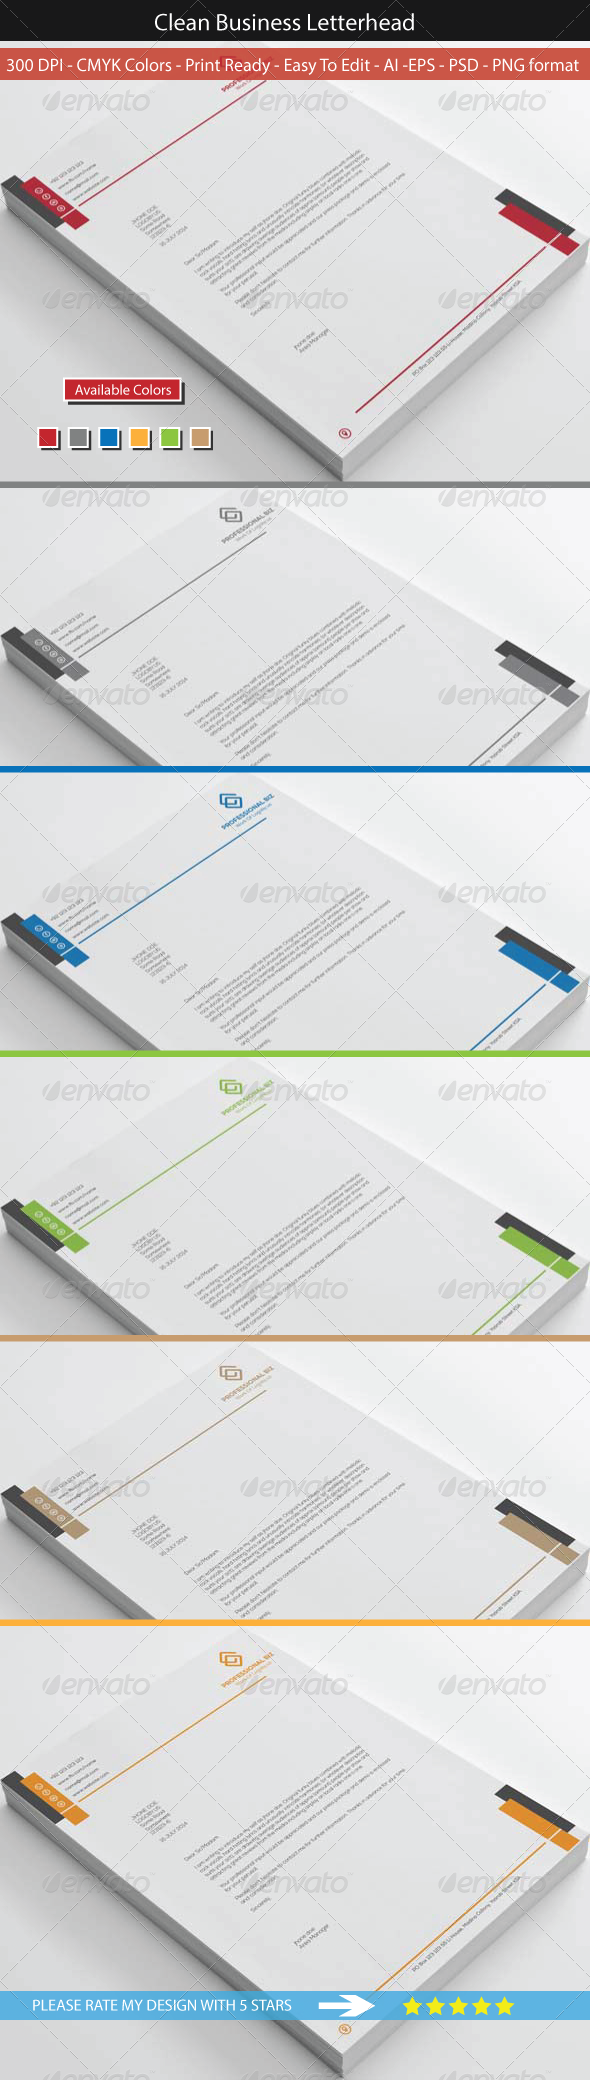 GraphicRiver Clean Corporate Business Letterhead 8543319